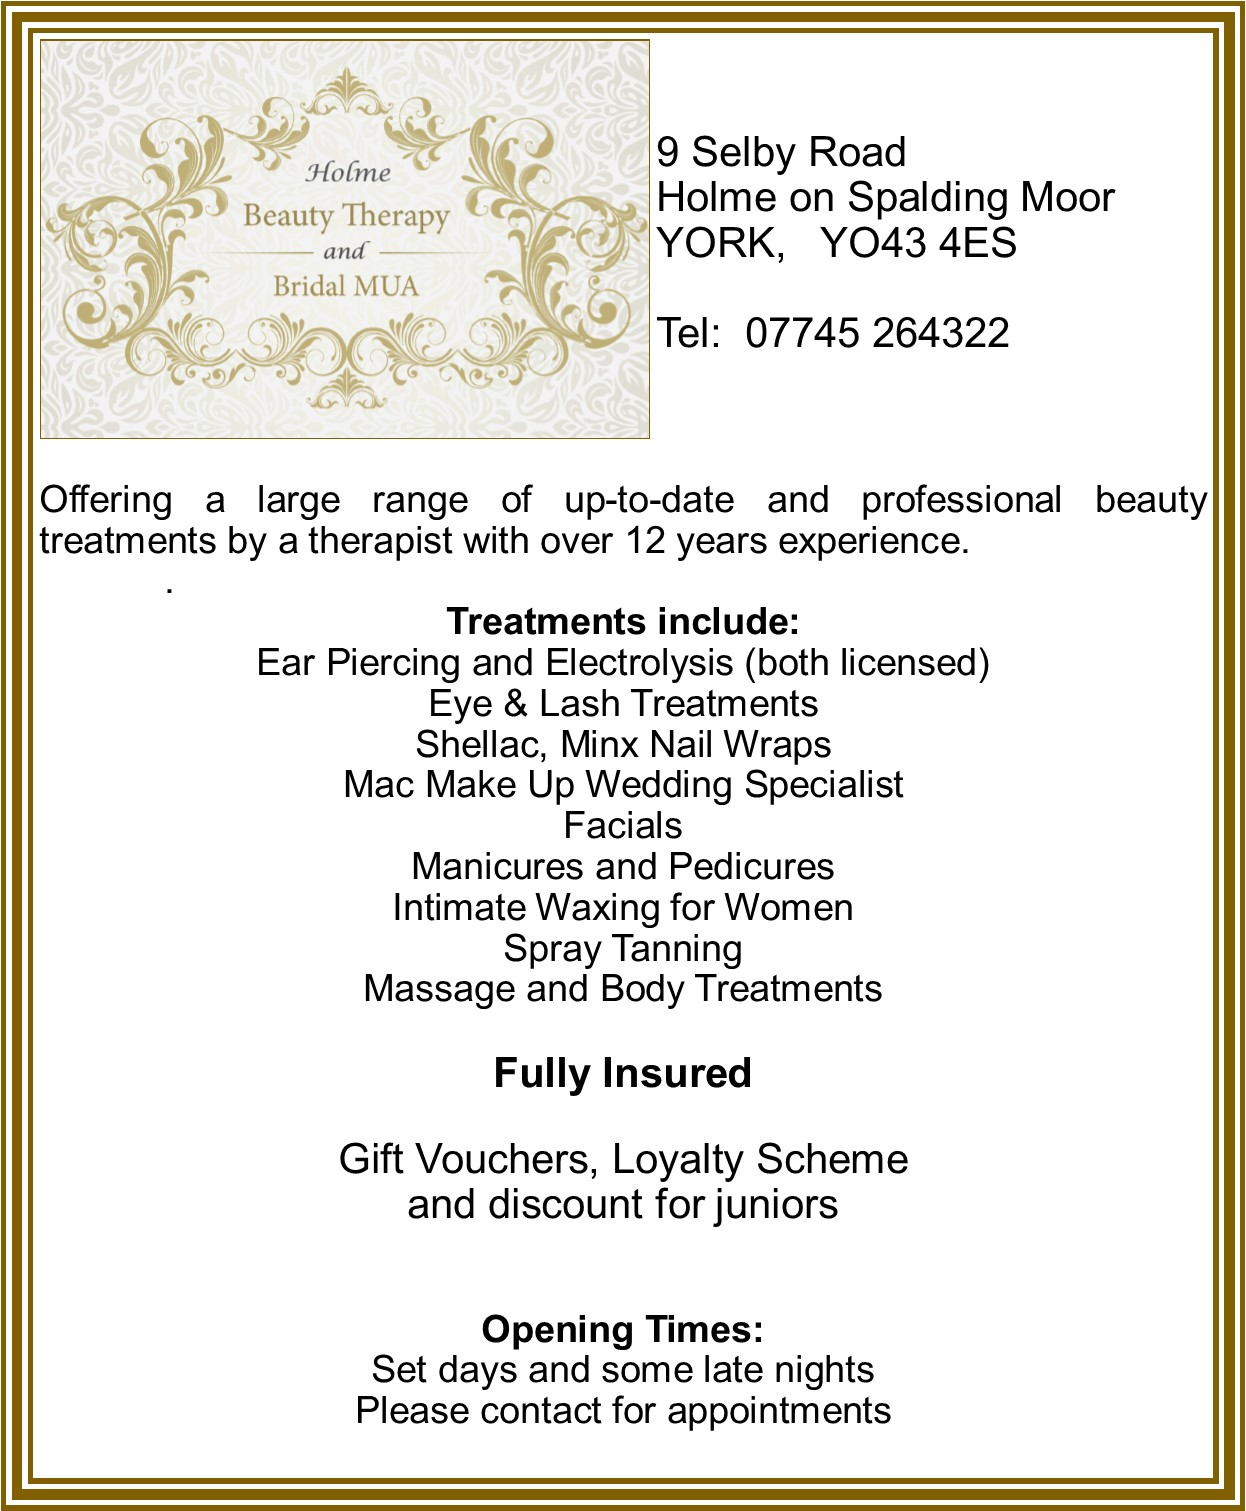 Holme Beauty Therapy and Bridal MUA